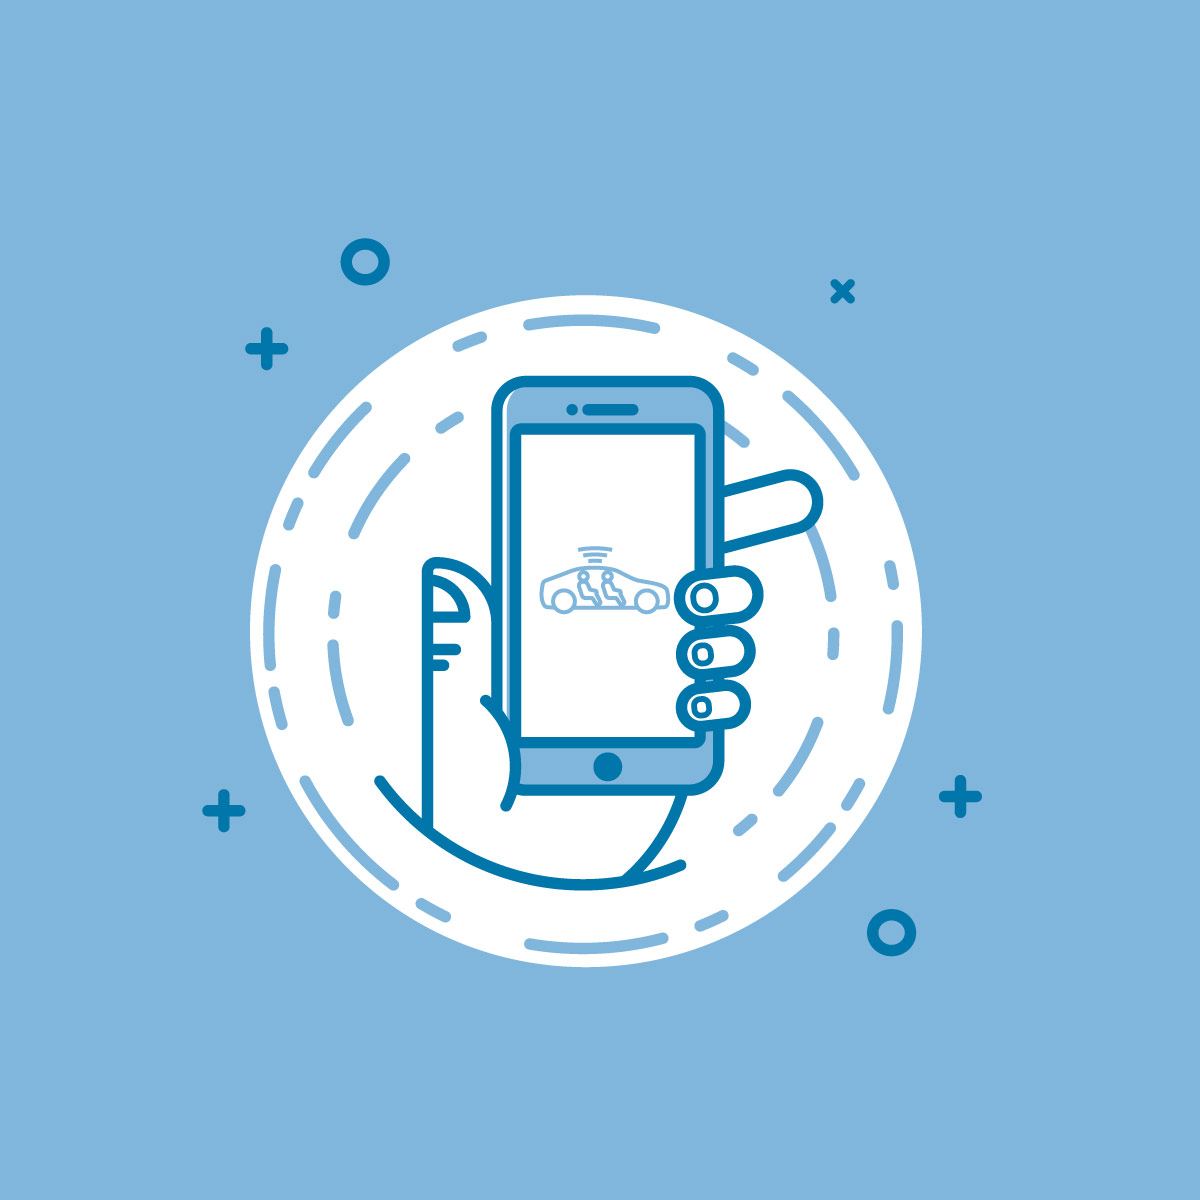 phone in hand illustration